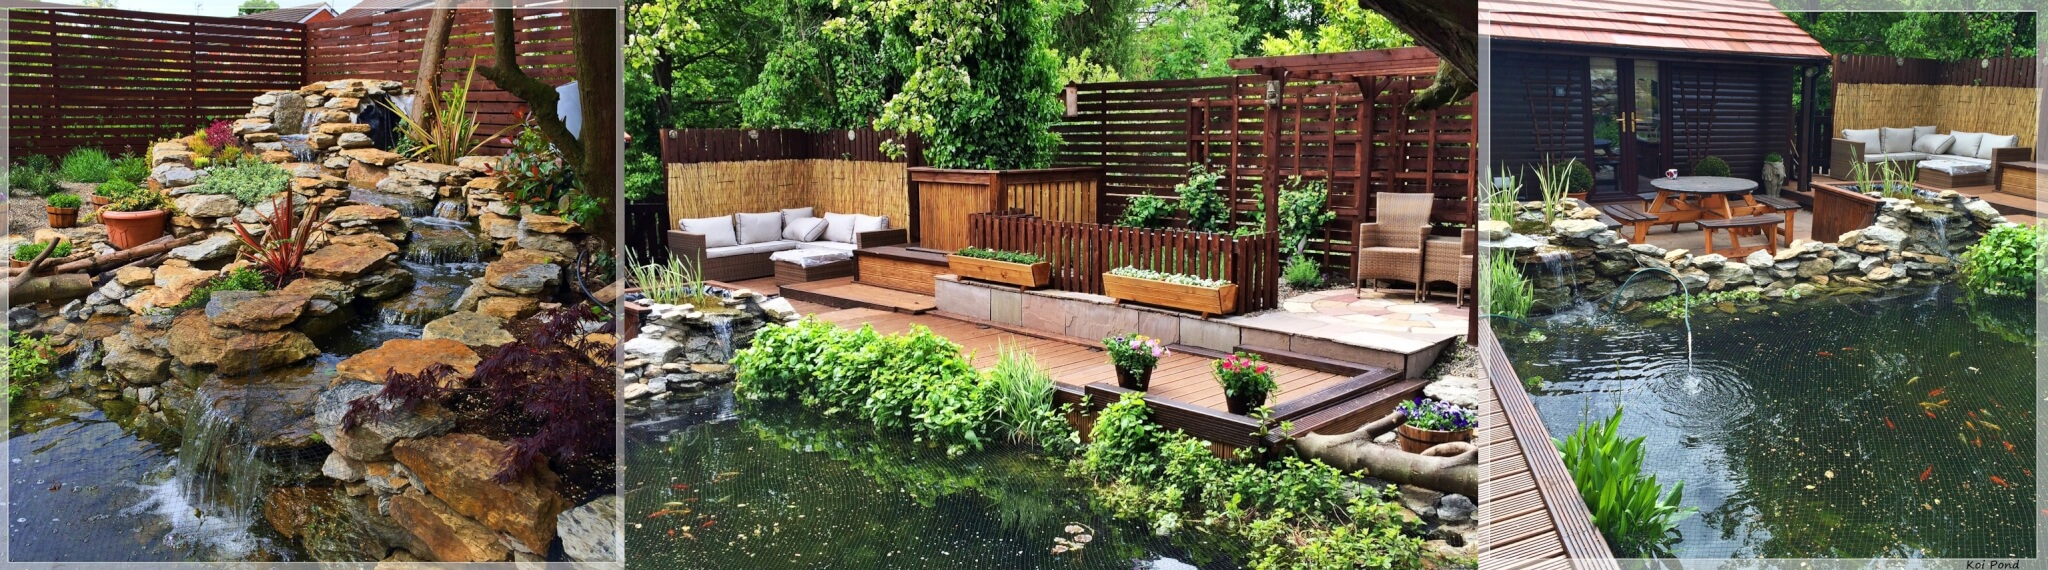 Ashford abel landscaping we can inspire and help you design and create your perfect garden or outdoor living space landscaping services ashford workwithnaturefo